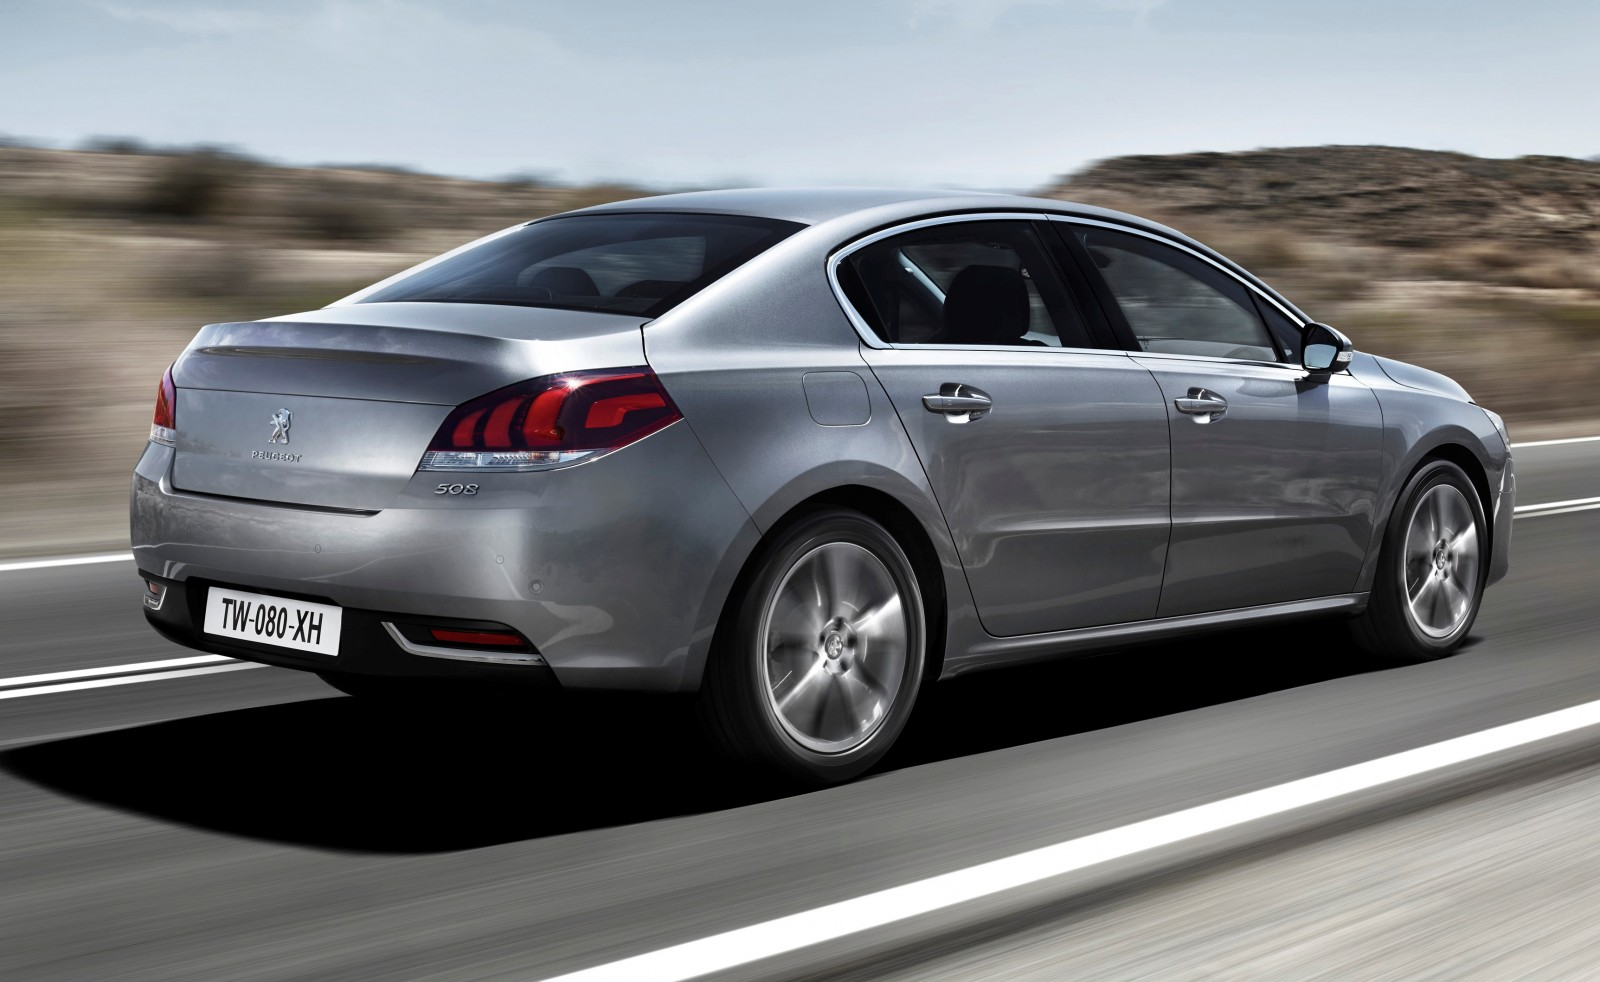 Update2 New Photos - 2015 Peugeot 508 Facelifted With New LED DRLs, Box-Design Beams and Tweaked Cabin Tech 9